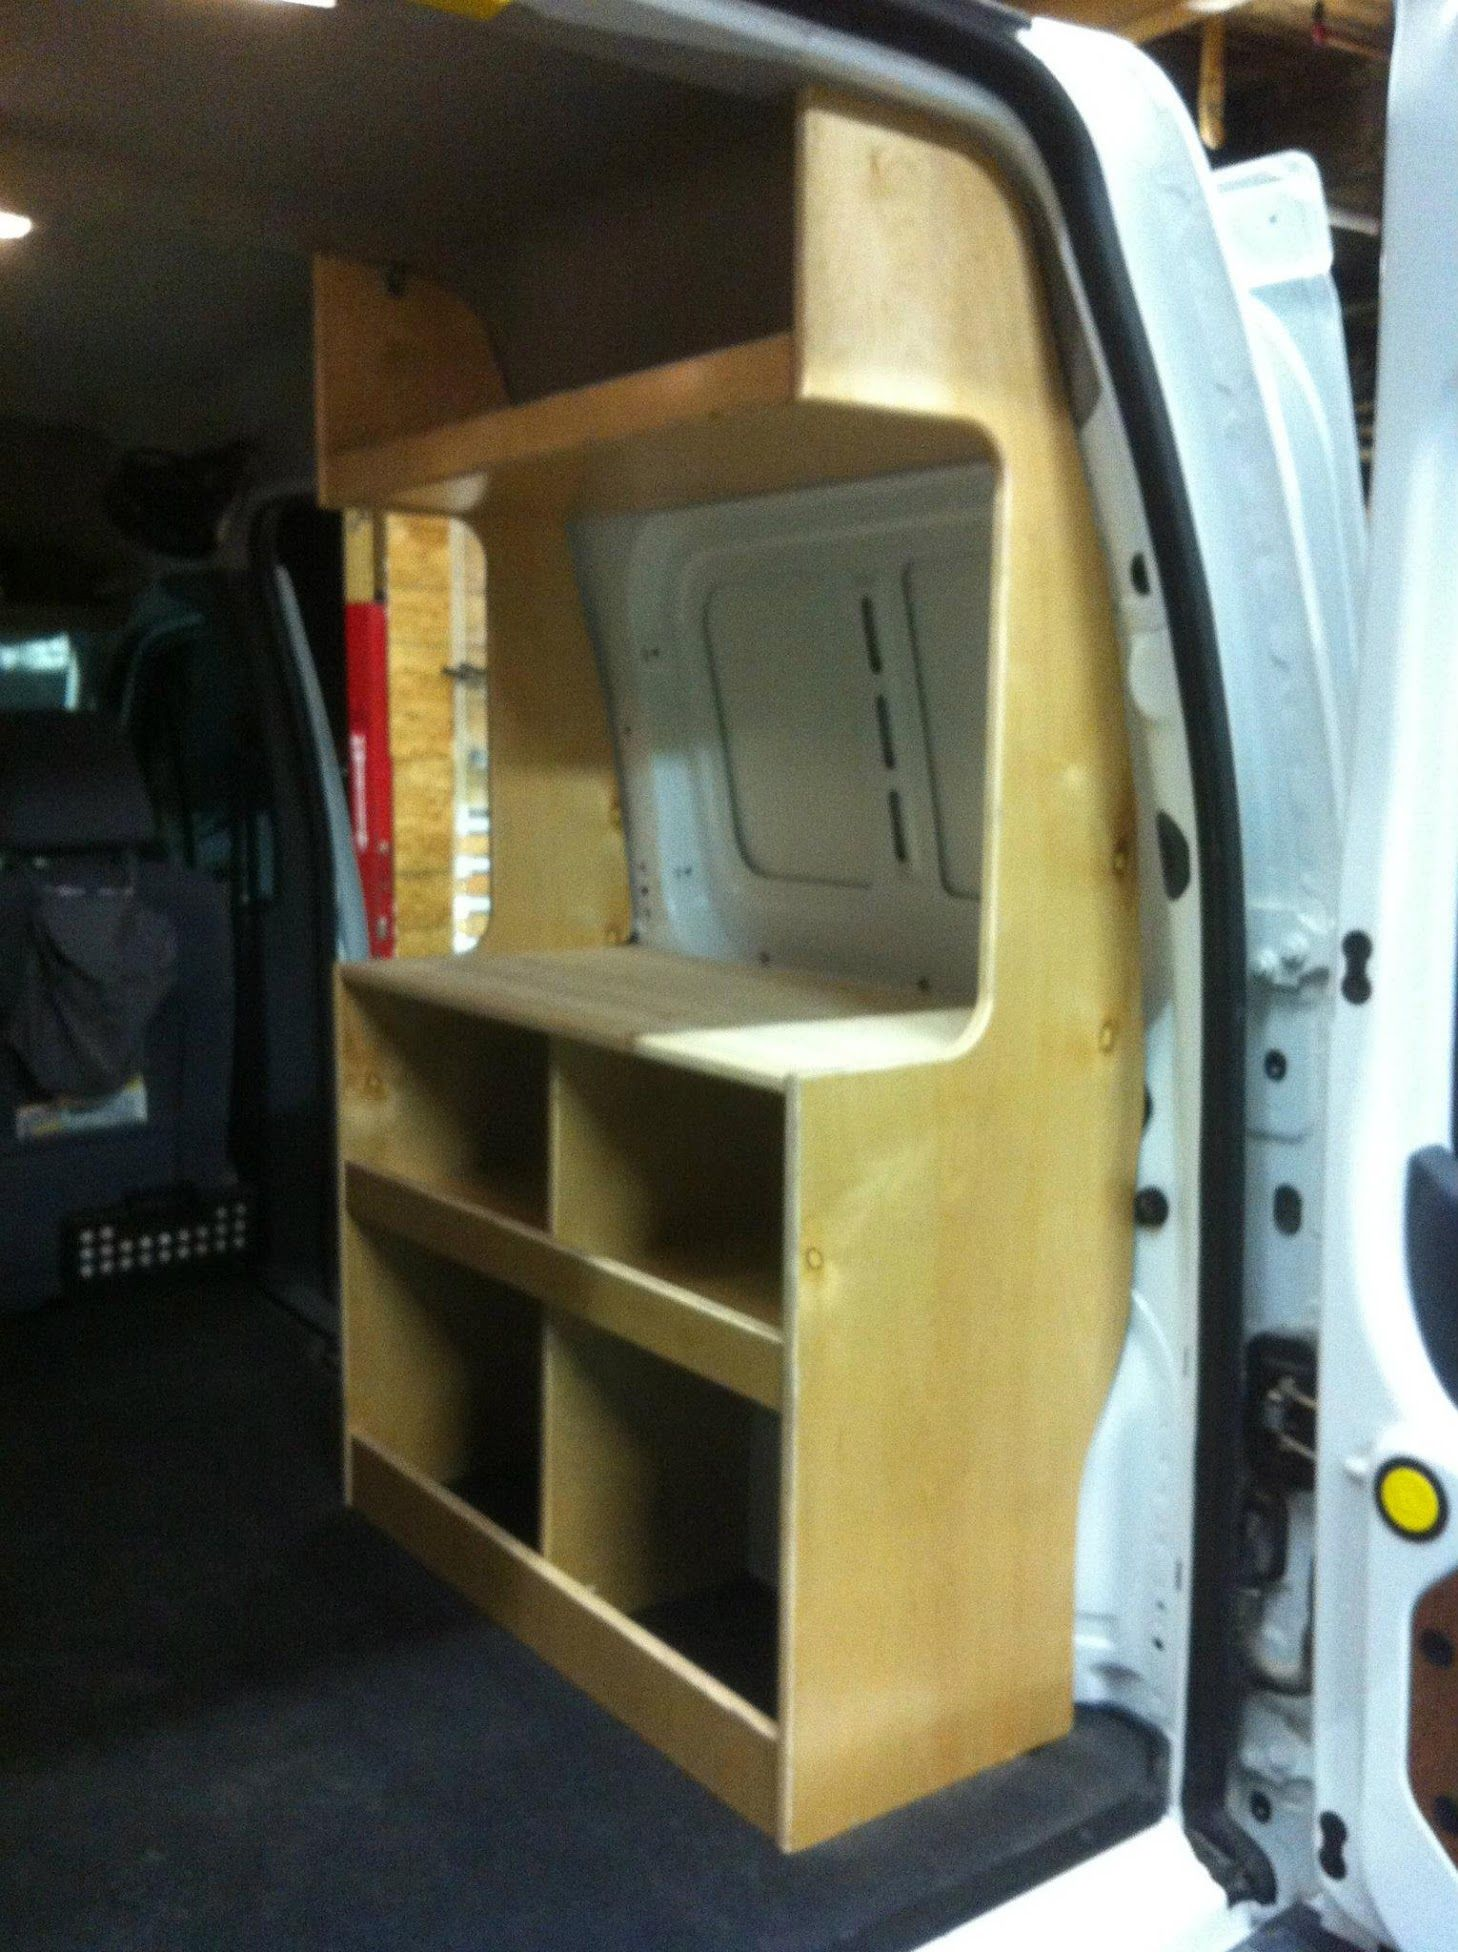 Google vanlife pinterest